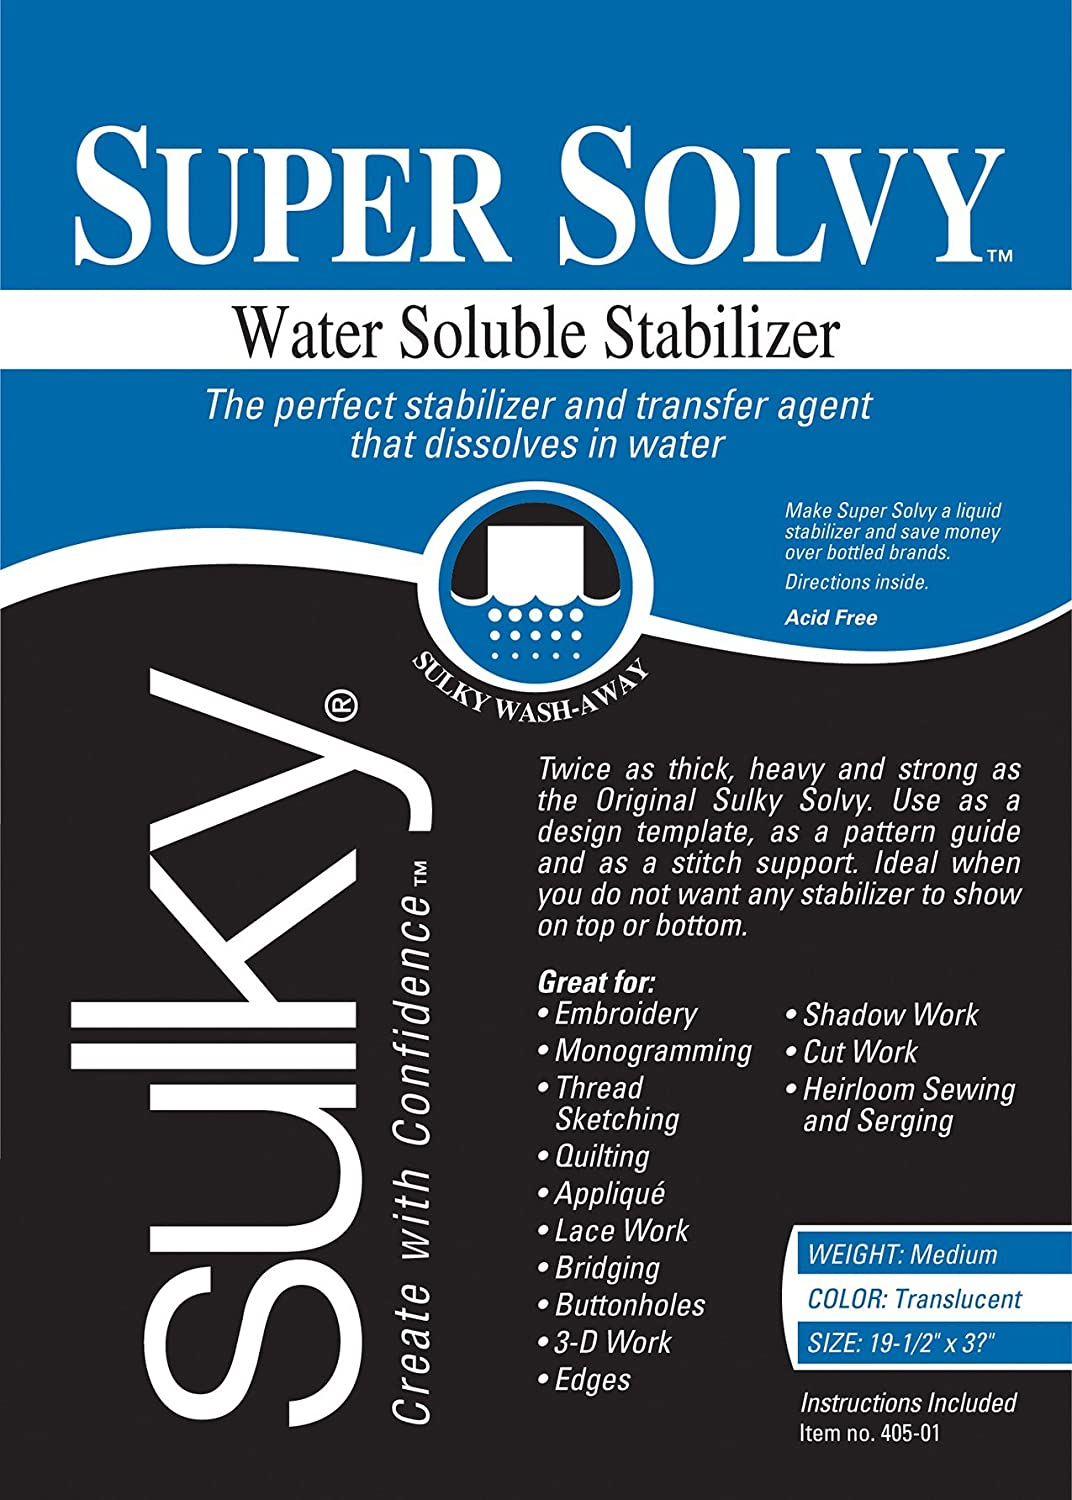 Sulky 19 1/2 x 36-inch Medium Weight Super Solvy Water Soluble Stabilizer